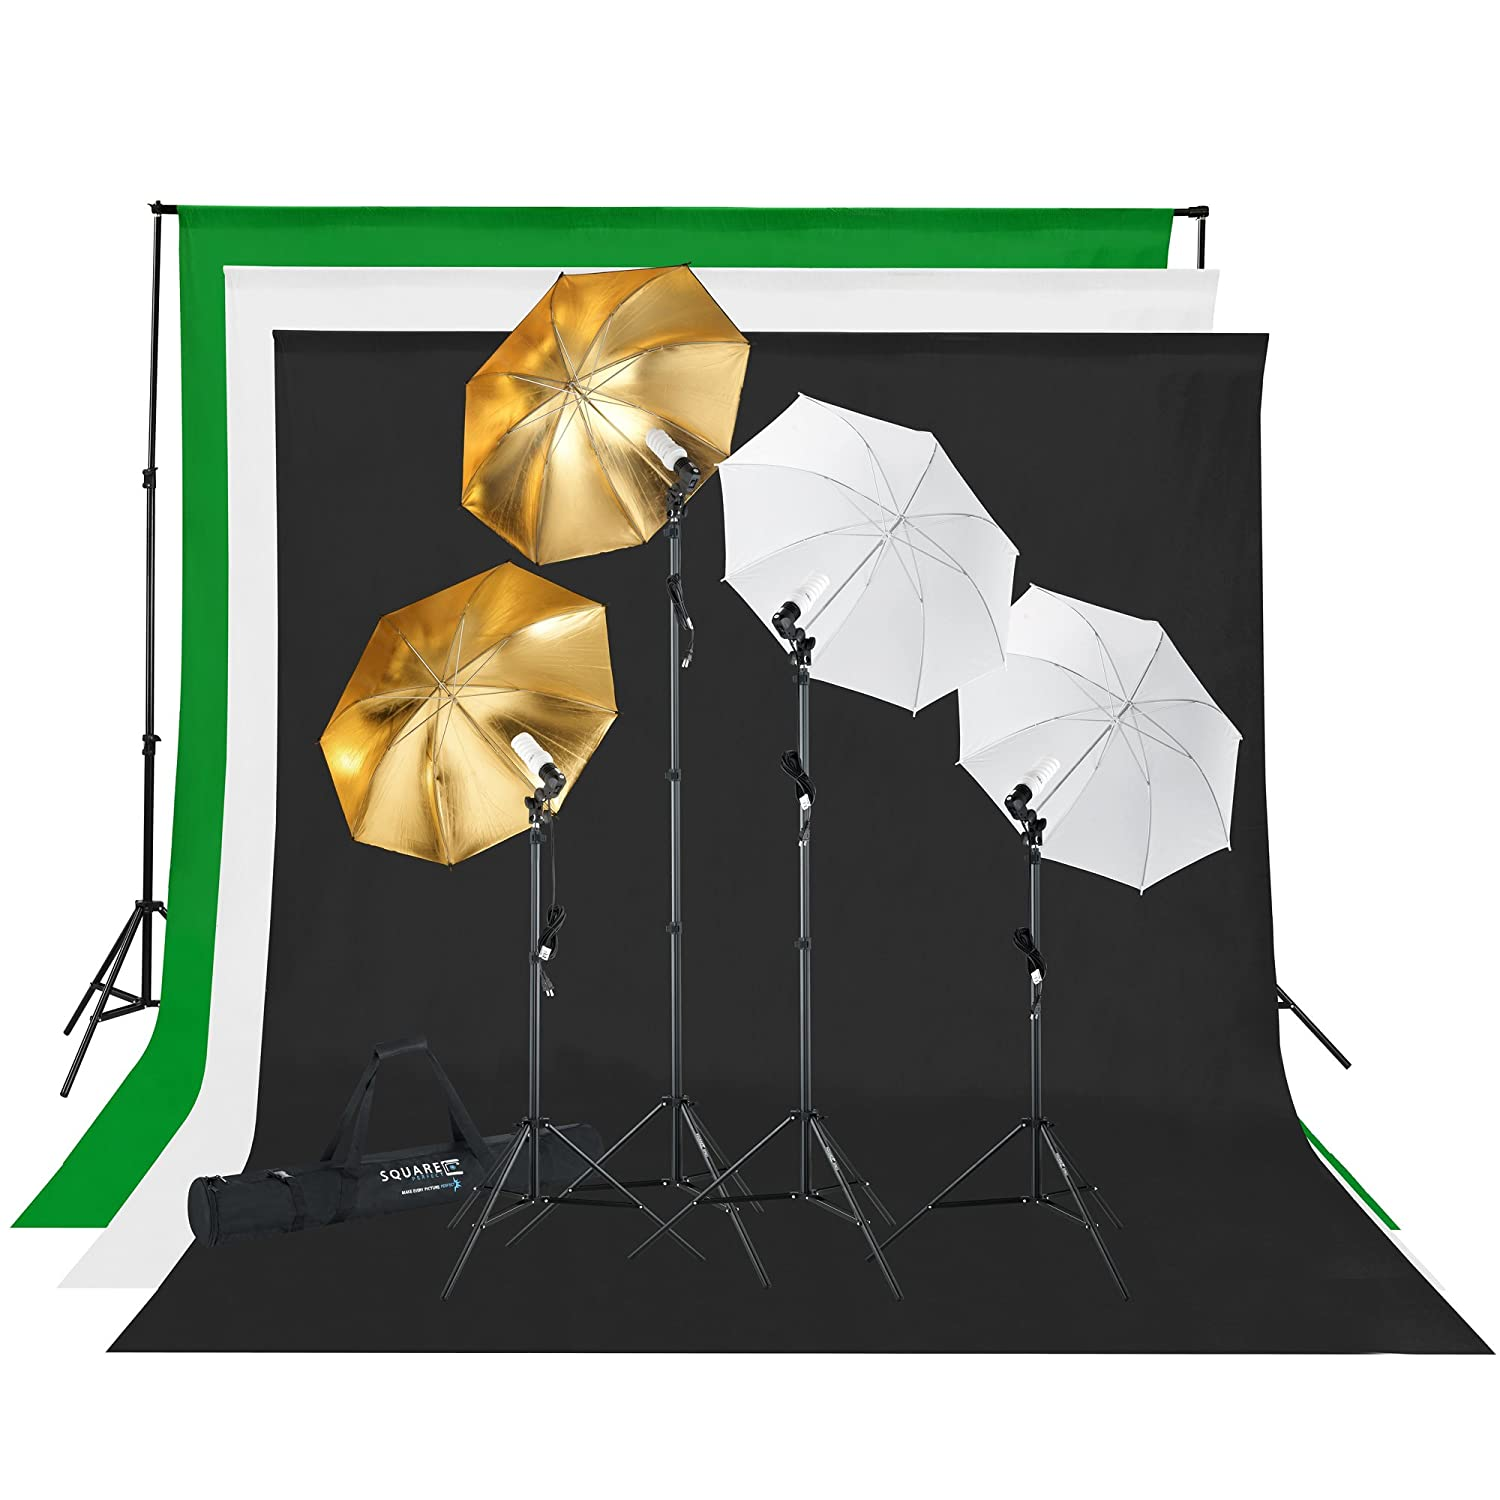 Amazon.com  Square Perfect 2814 Professional Quality Photography Studio Lighting and Background Kit with Muslin Backdrops  Photo Studio Backgrounds ...  sc 1 st  Amazon.com & Amazon.com : Square Perfect 2814 Professional Quality Photography ... azcodes.com